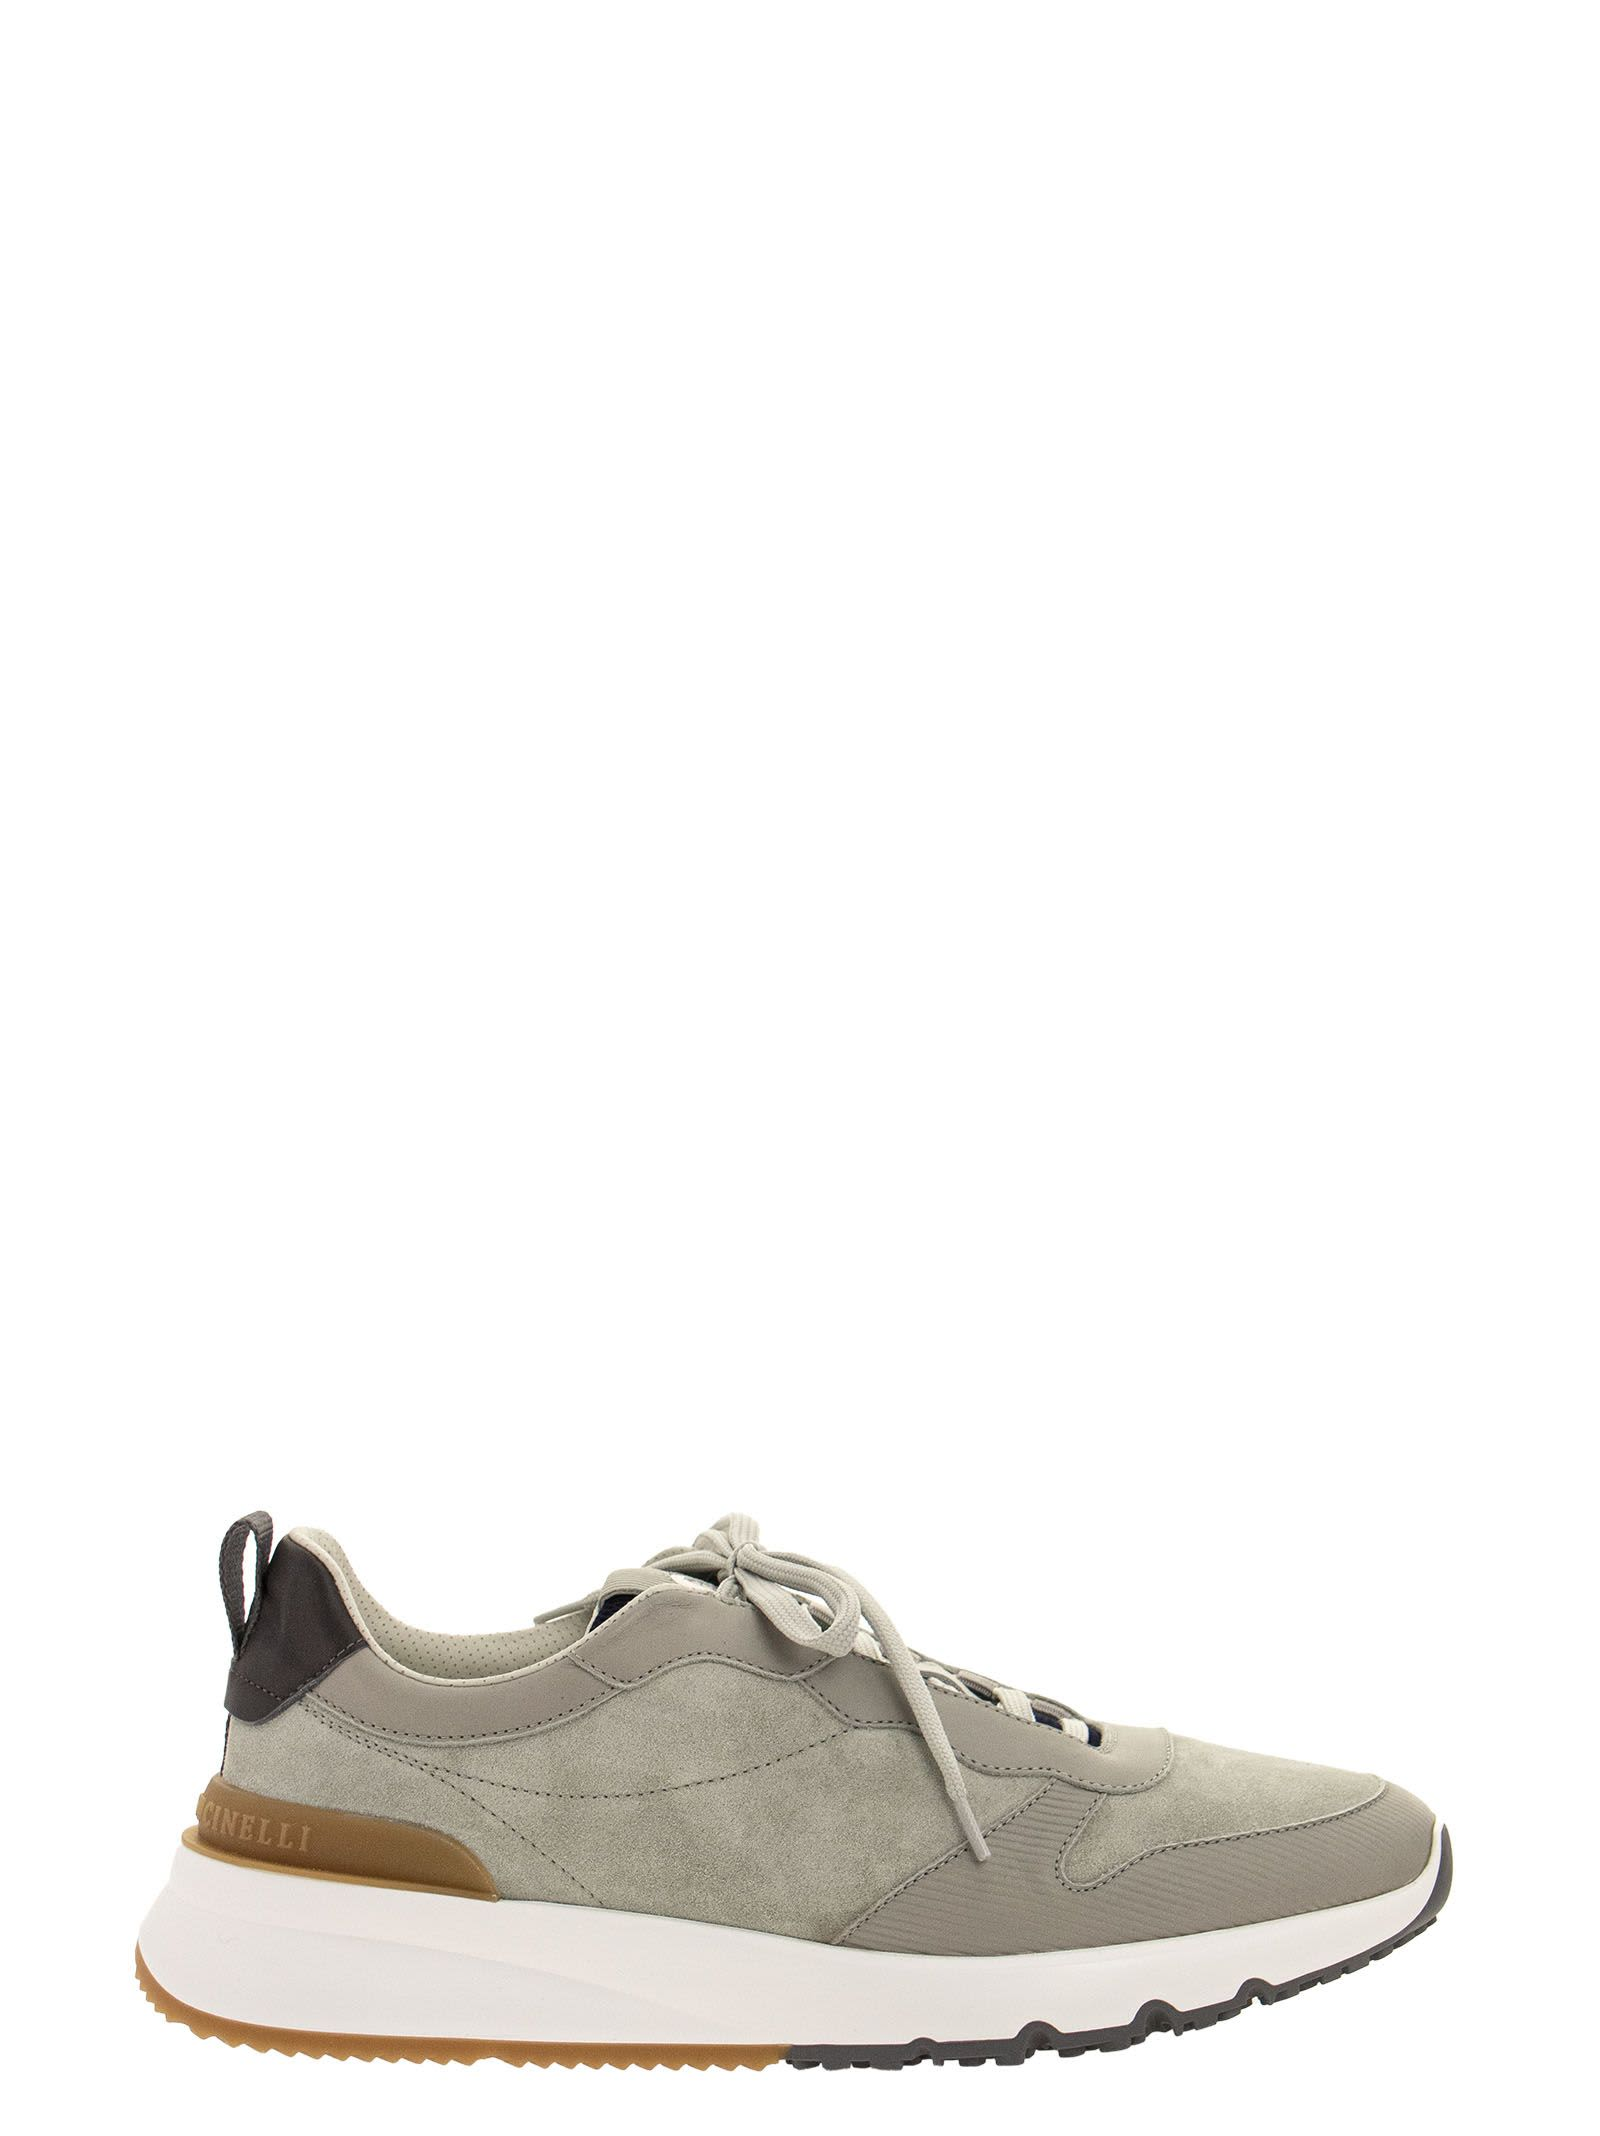 Brunello Cucinelli WASHED SUEDE AND SEMI-POLISHED CALFSKIN RUNNERS SNEAKERS GREY